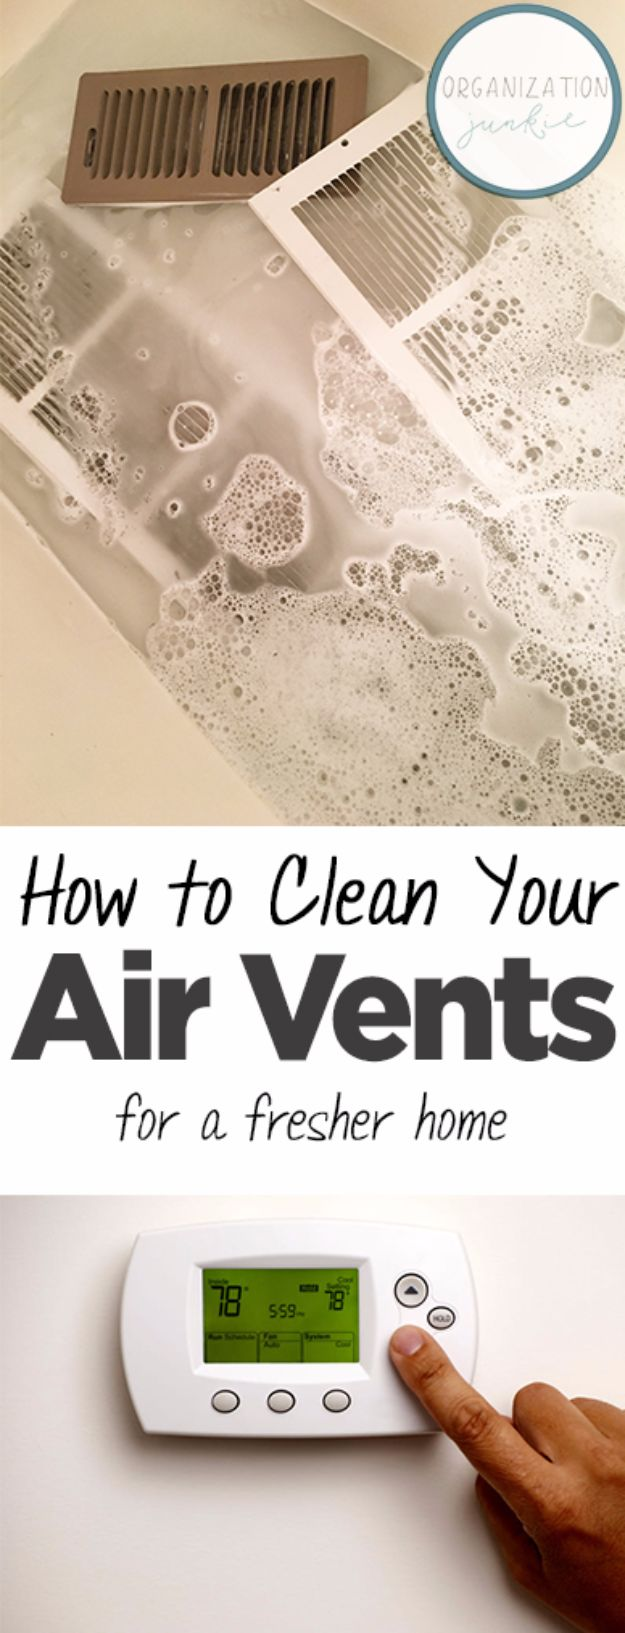 Best Spring Cleaning Ideas - Clean Your Air Vents For A Fresher Home - Easy Cleaning Tips For Home - DIY Cleaning Hacks and Product Recipes - Tips and Tricks for Cleaning the Bathroom, Kitchen, Floors and Countertops - Cheap Solutions for A Clean House http://diyjoy.com/best-spring-cleaning-ideas